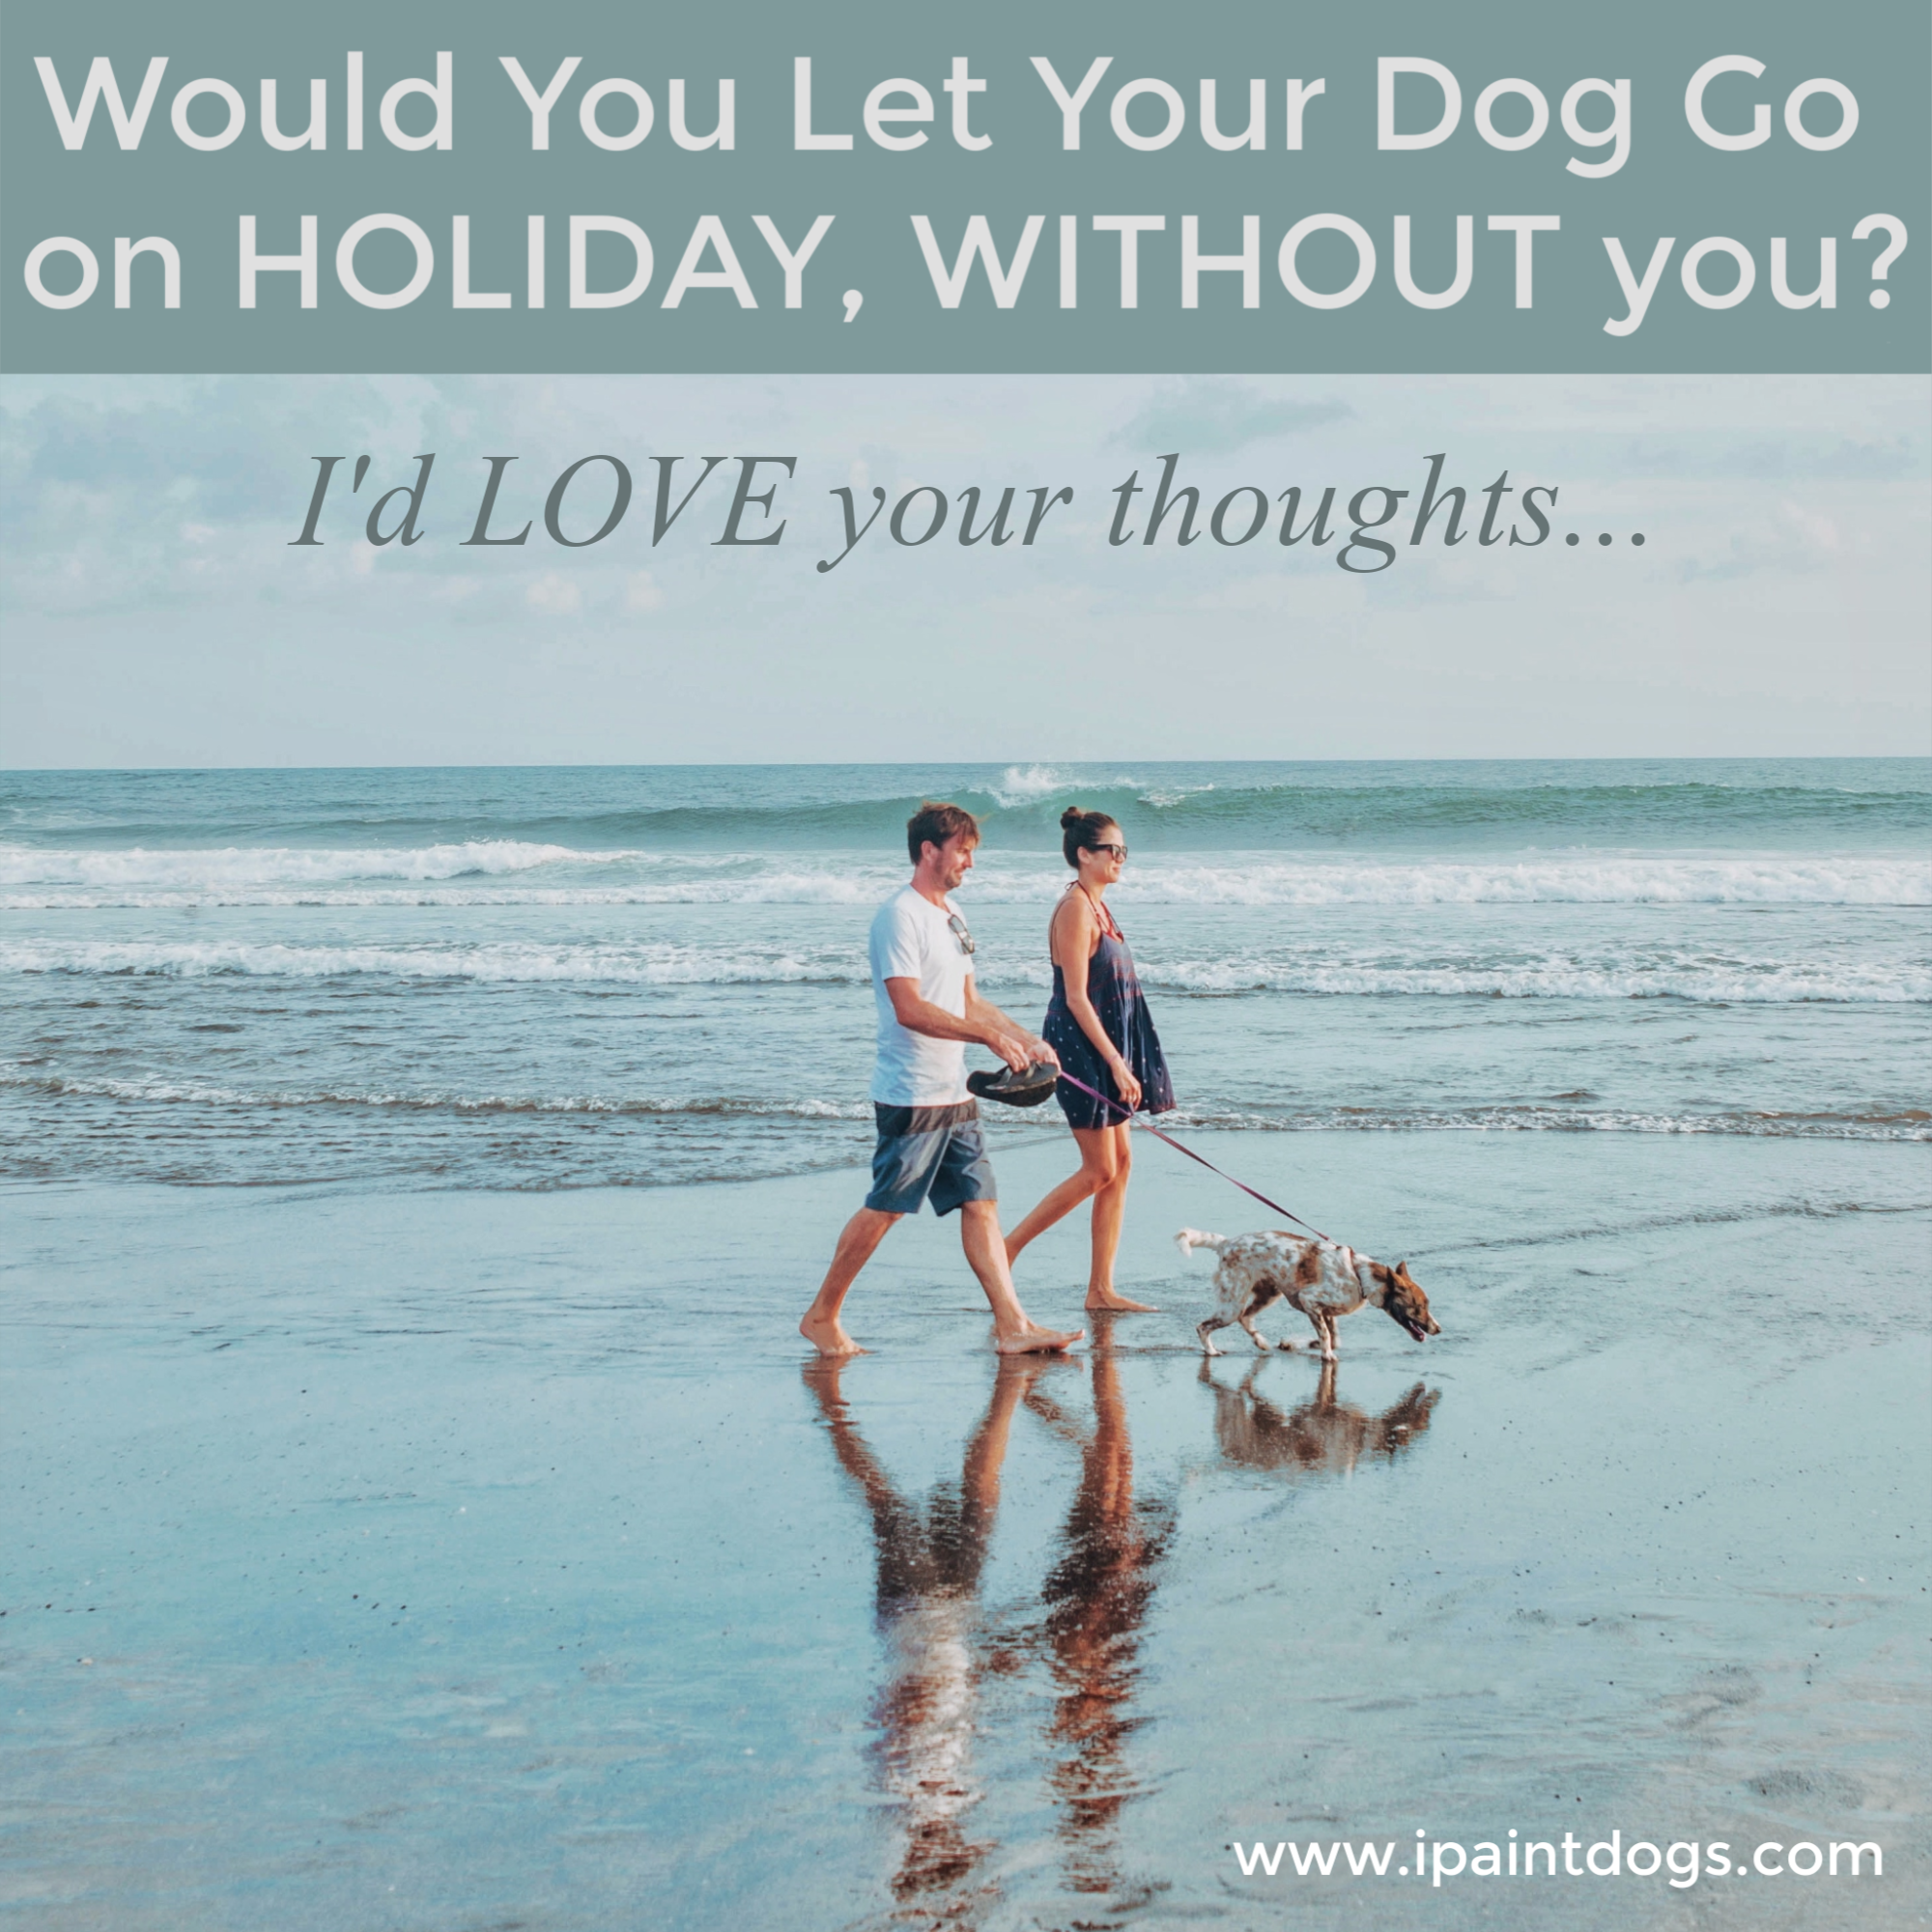 Would you let your dog go on holiday without you?  The Dog Garden & ipaintdogs.com